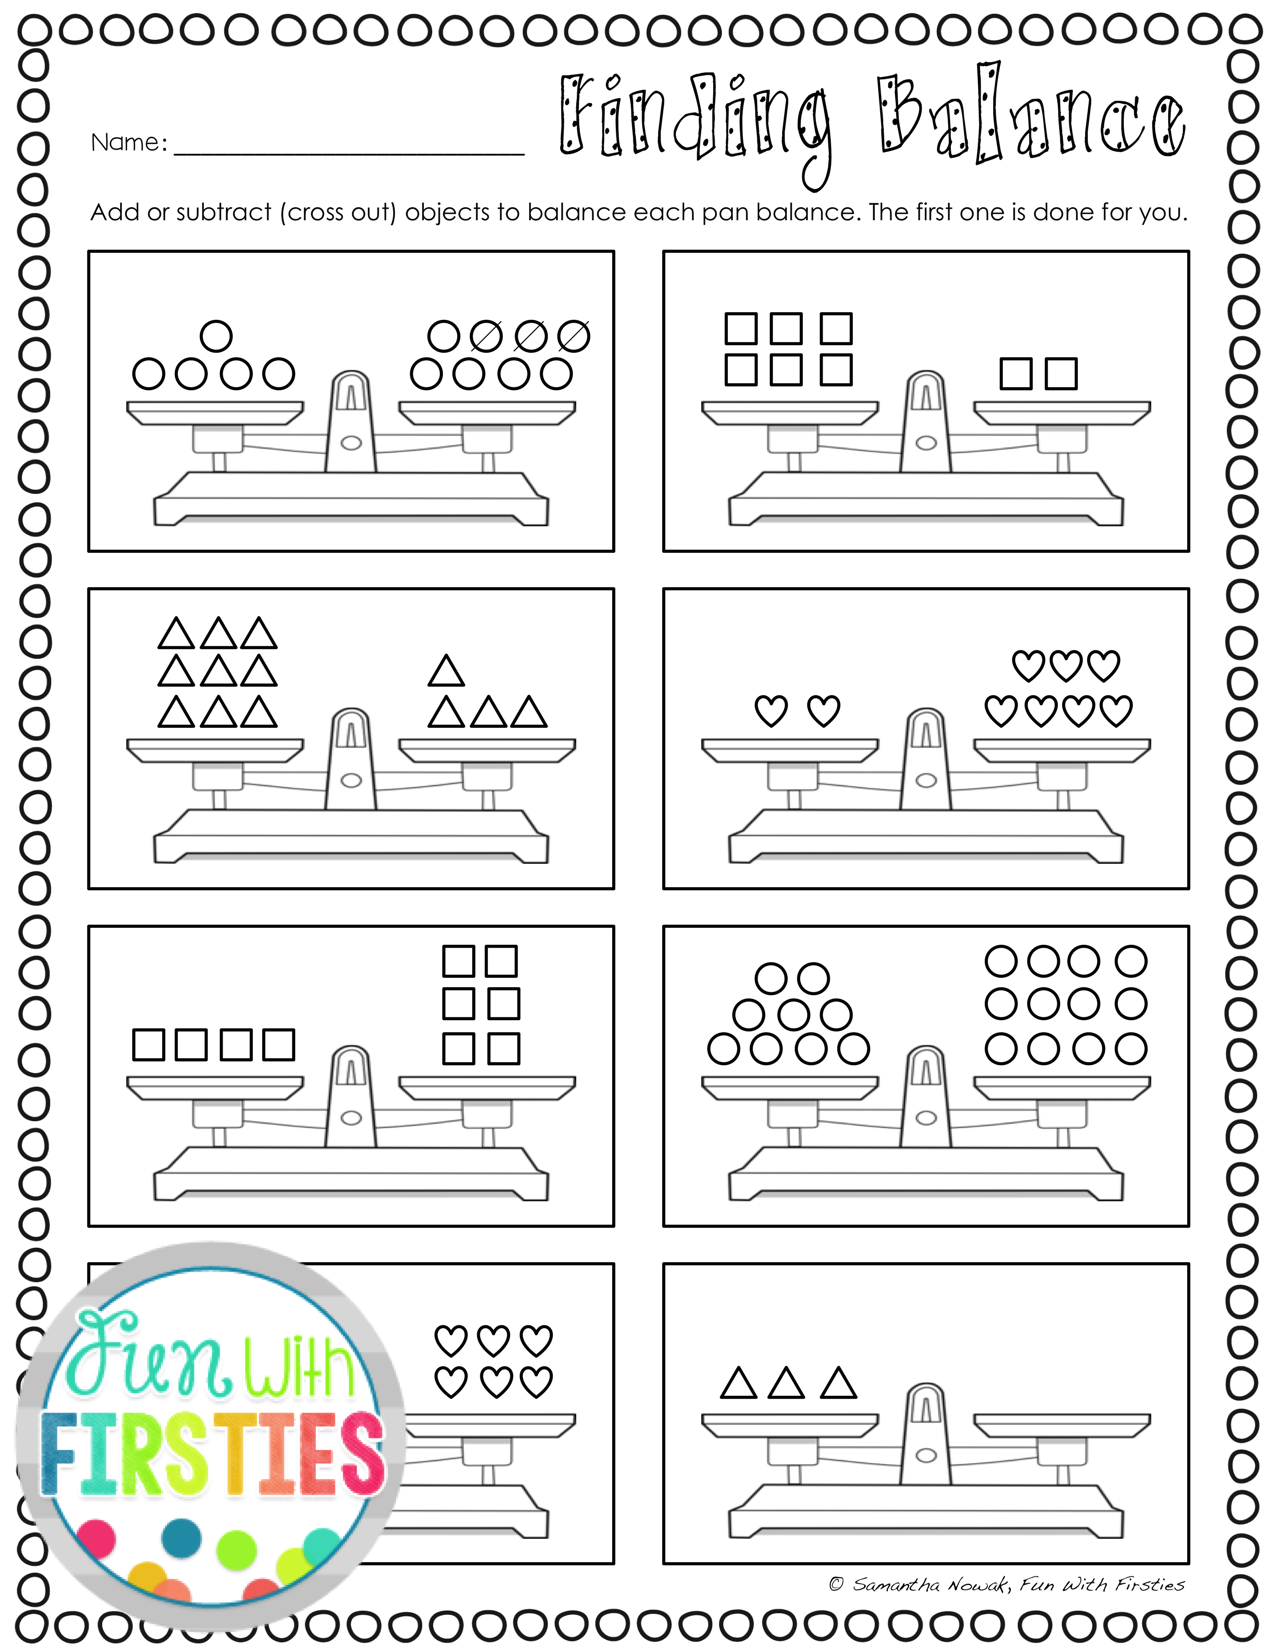 medium resolution of Balancing Equations: Print \u0026 Go! worksheets for extra practice and/or  assessment   First grade math worksheets